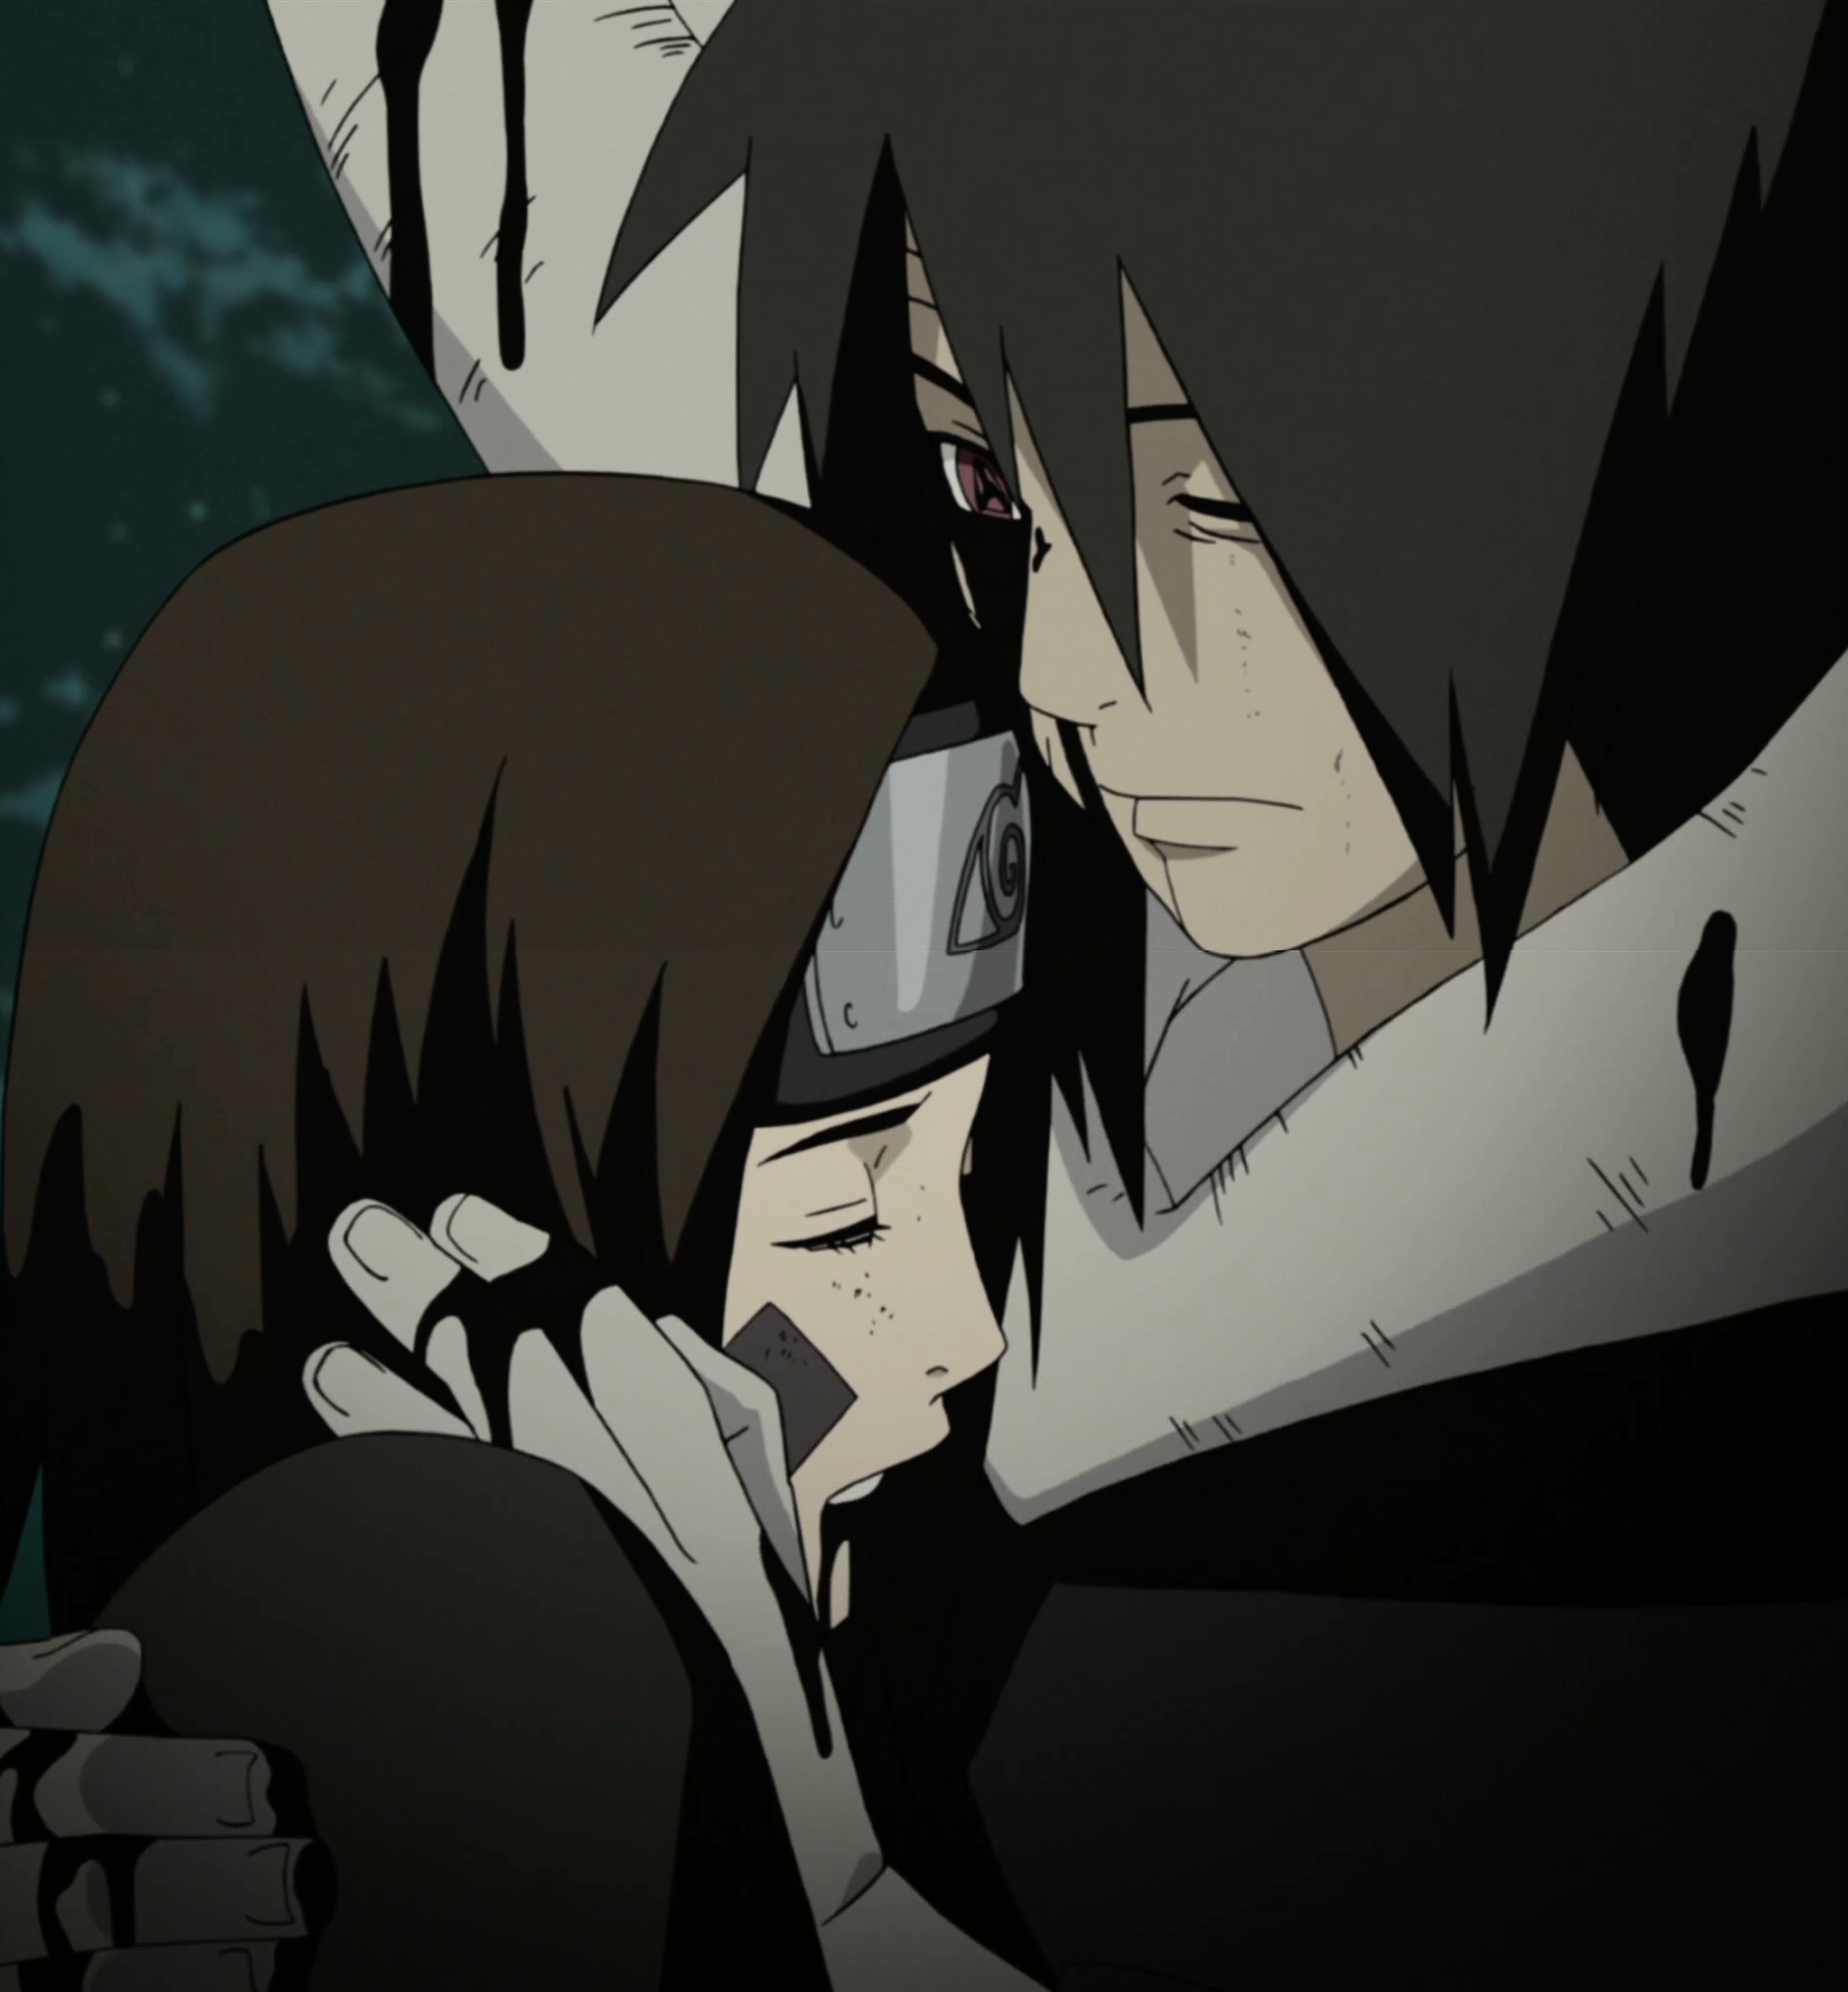 http://img2.wikia.nocookie.net/__cb20140123132217/naruto/images/6/6e/Obito_and_Rin.png